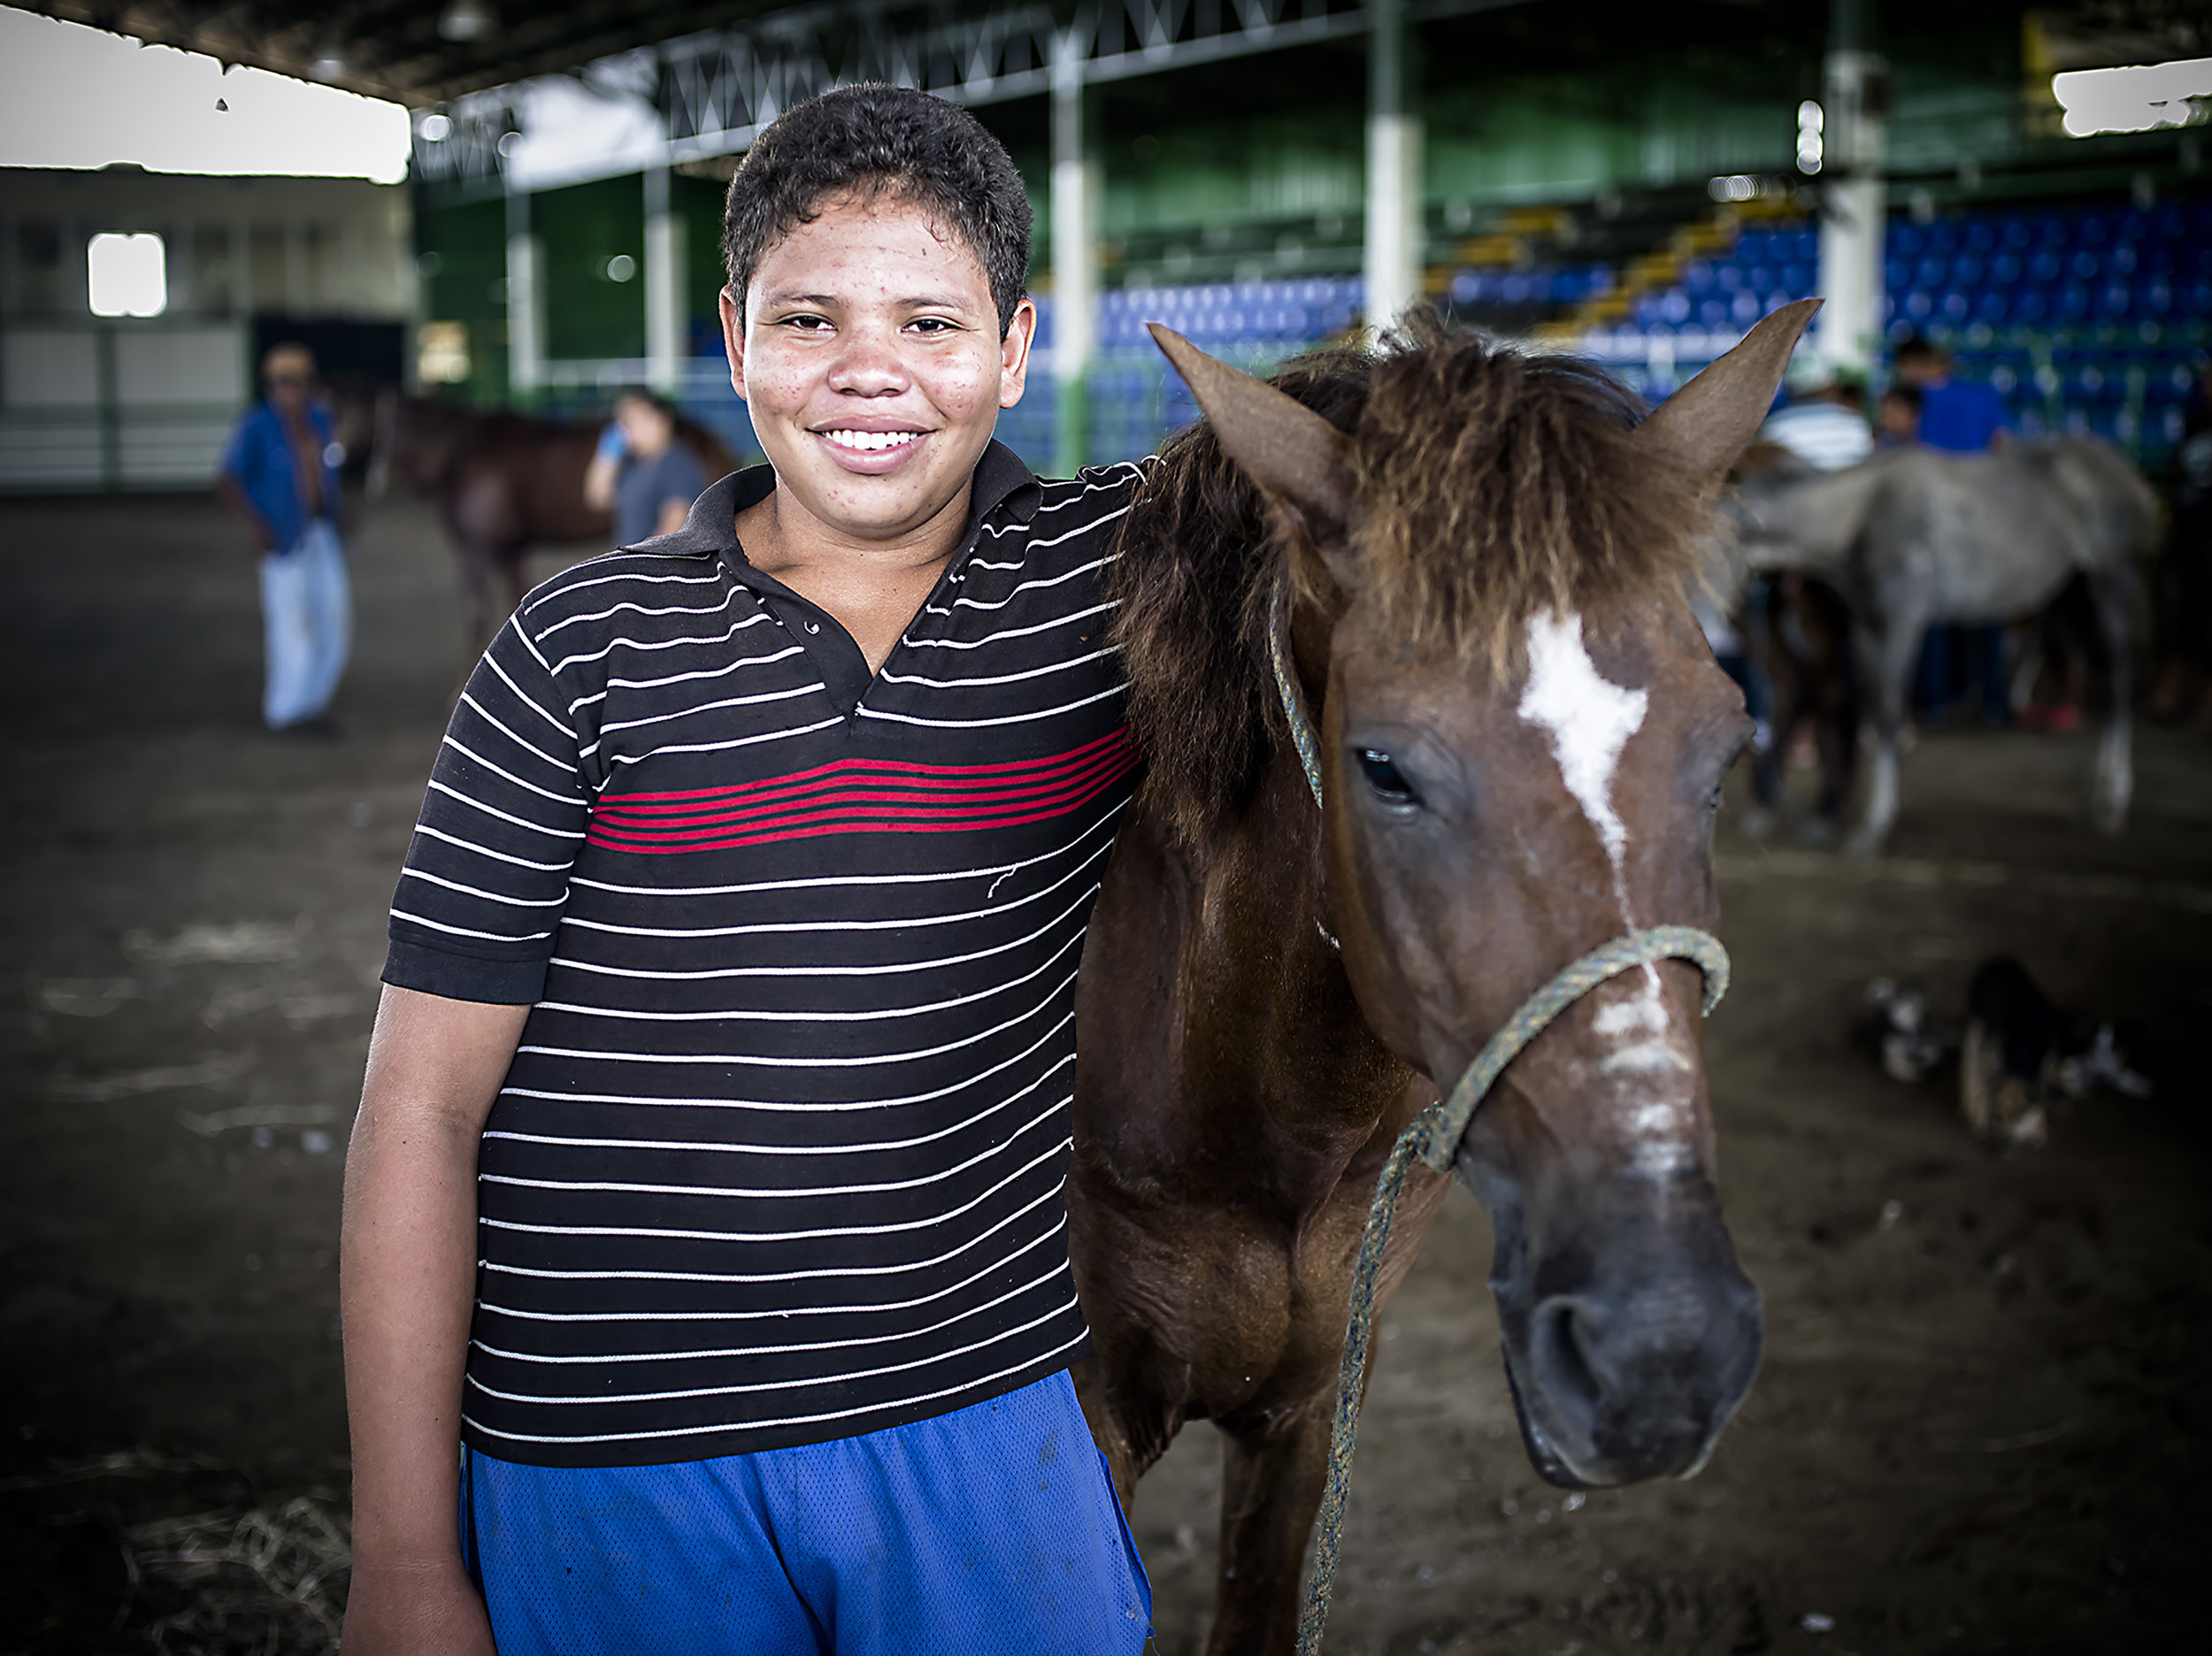 Cesar from the ISWA Scholarship Programme shows off his family's horse.